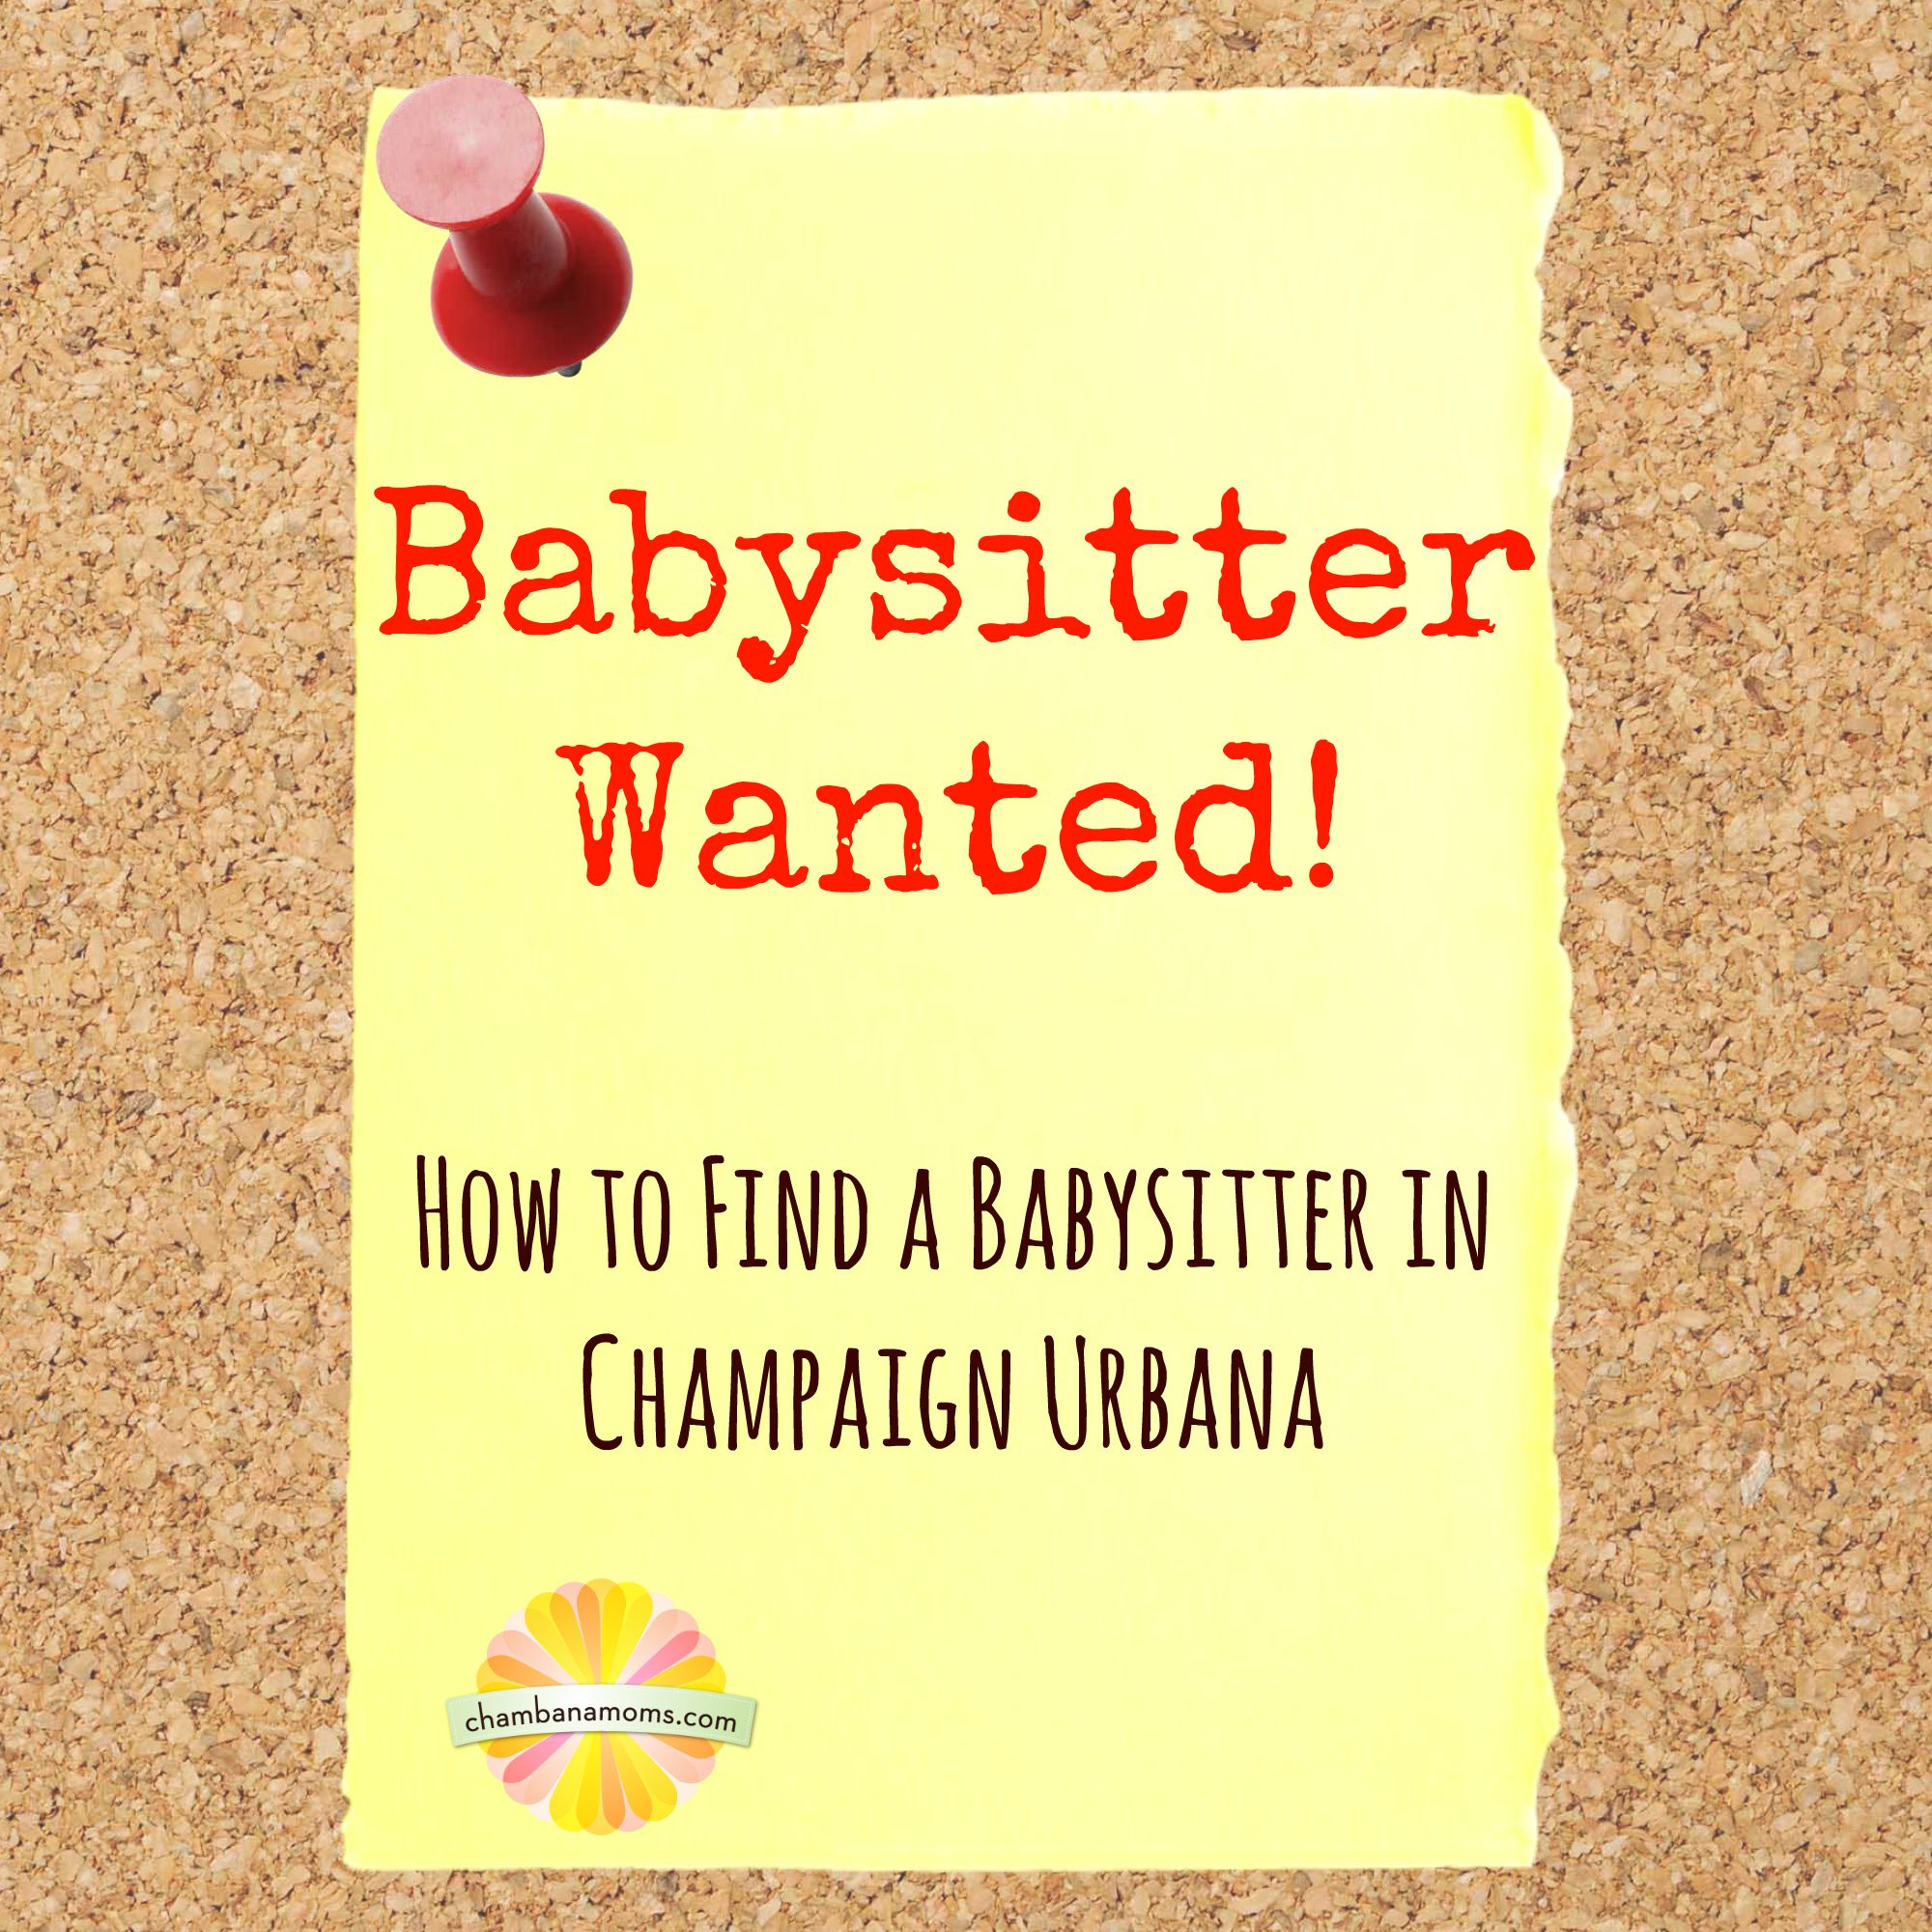 how to find a babysitter in champaign